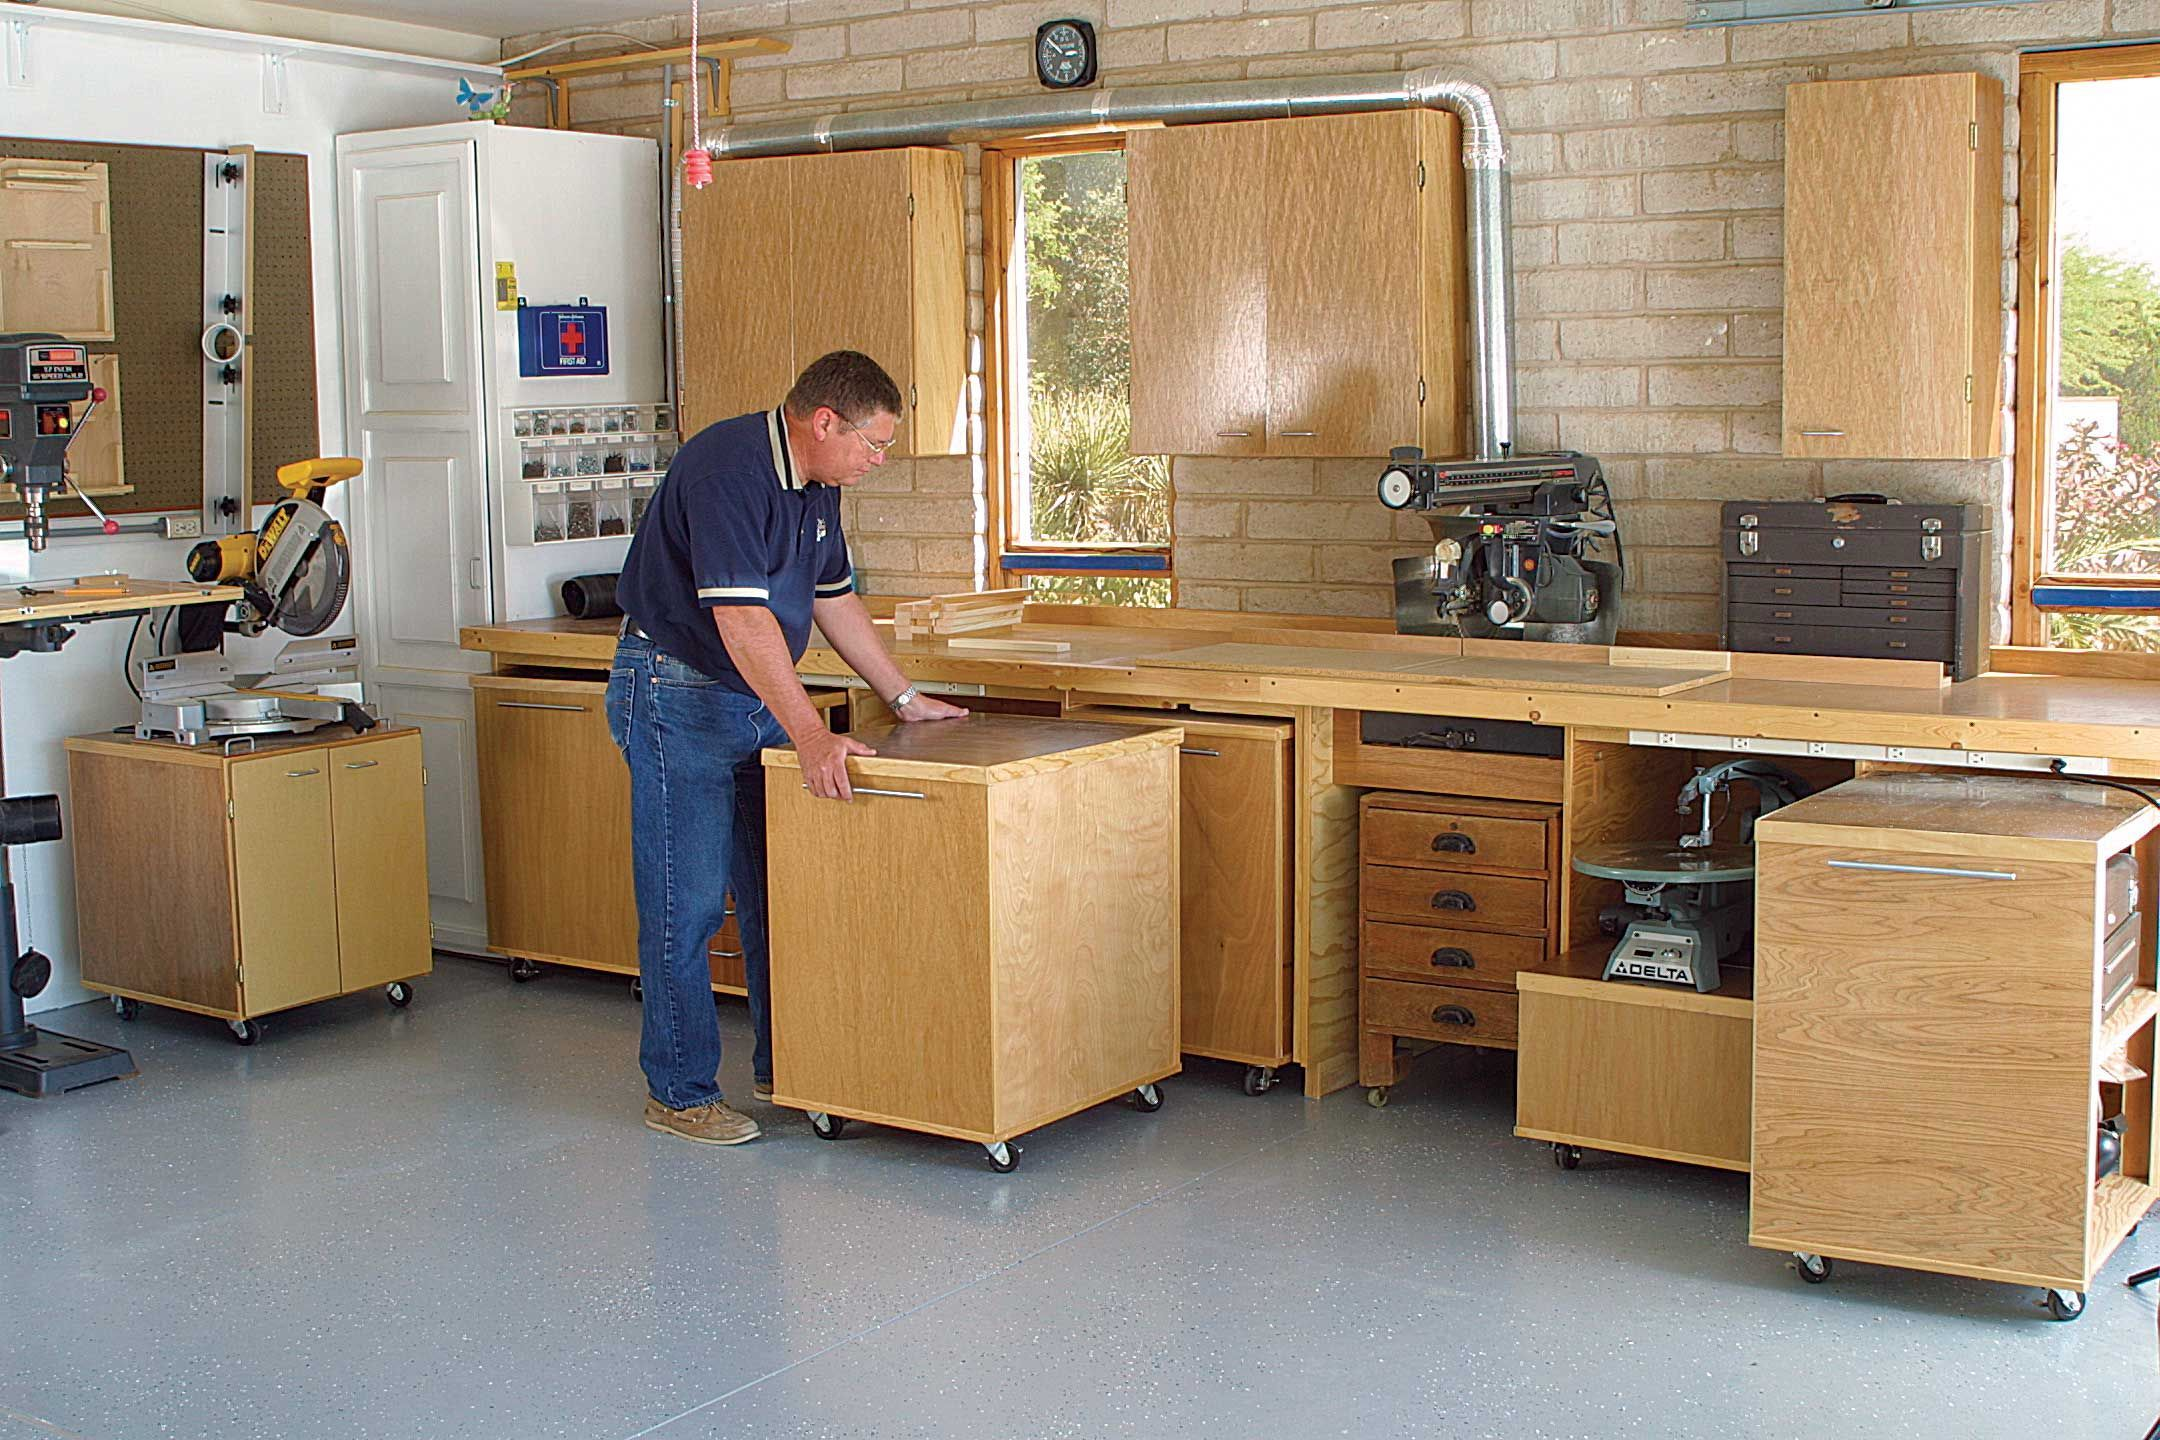 Photo of AWESOME Workshop or Garage setup! Rollout storage units – extra workspace on top…